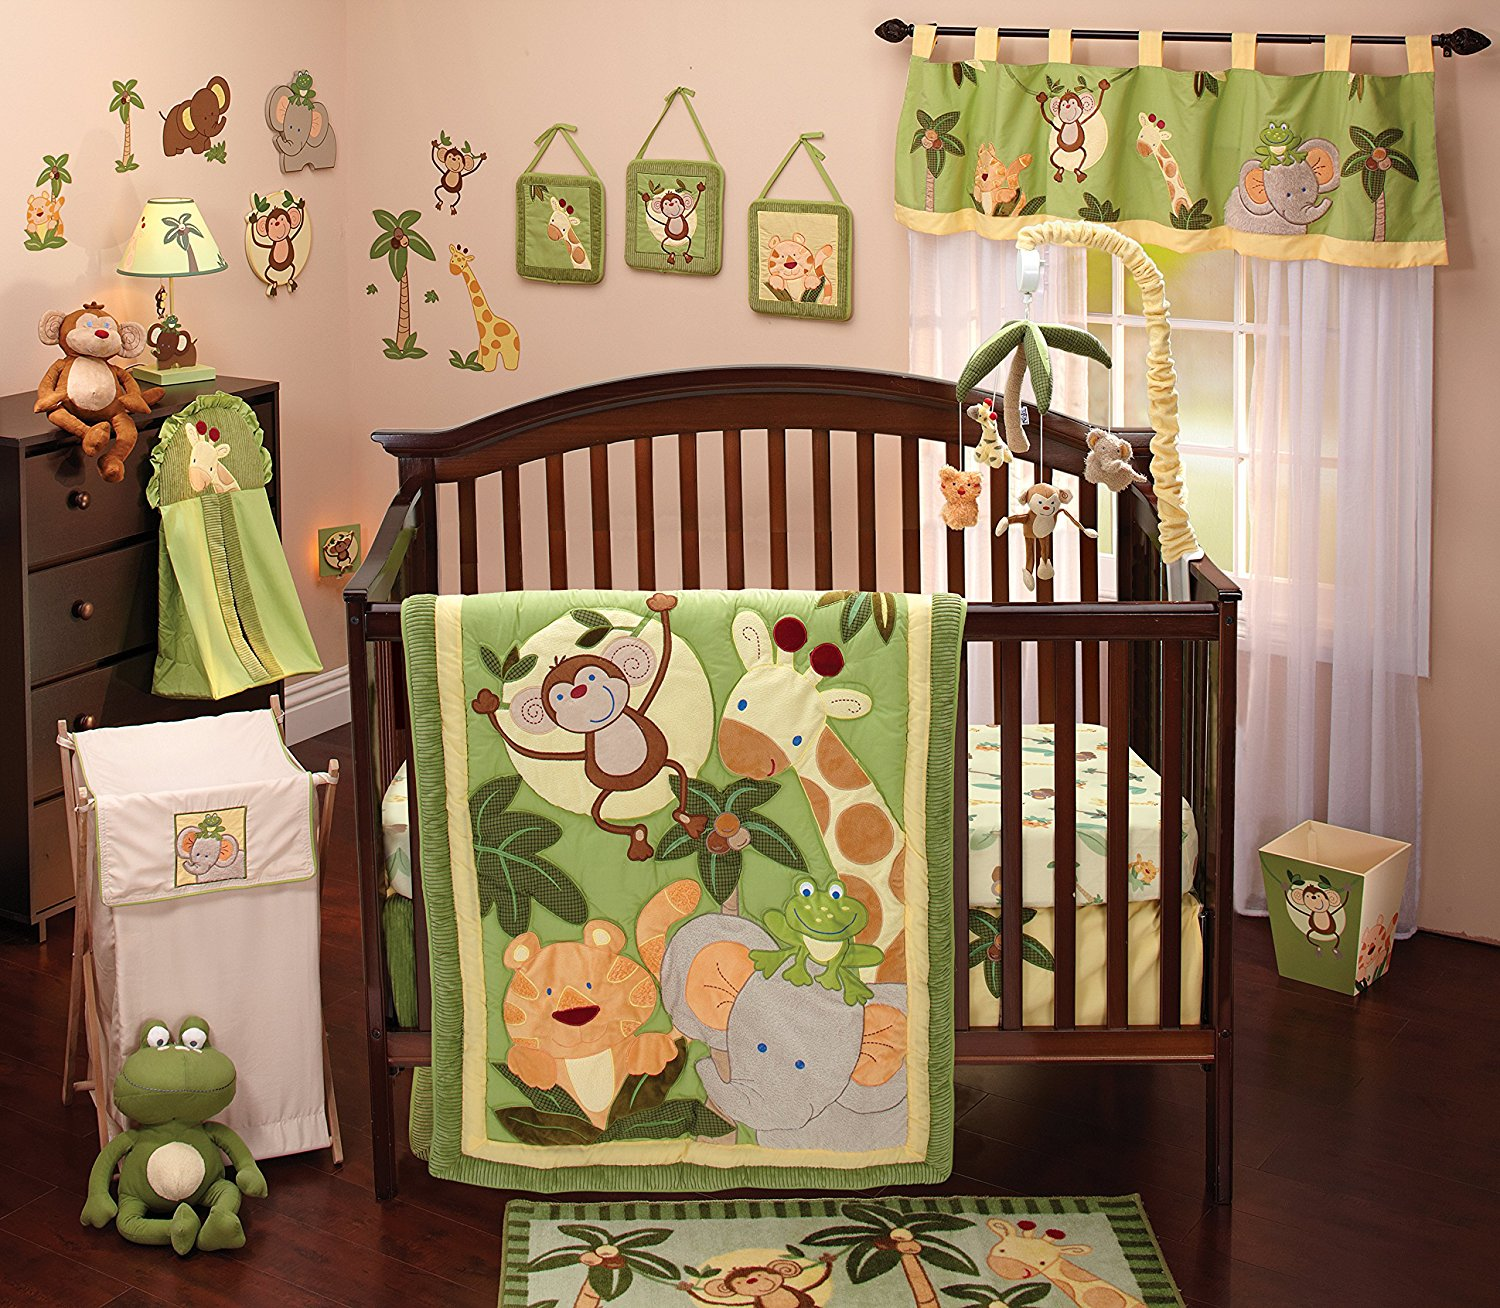 baby bedding amazon.com : nojo jungle babies 8 piece bedding set : crib bedding FBDPGRO